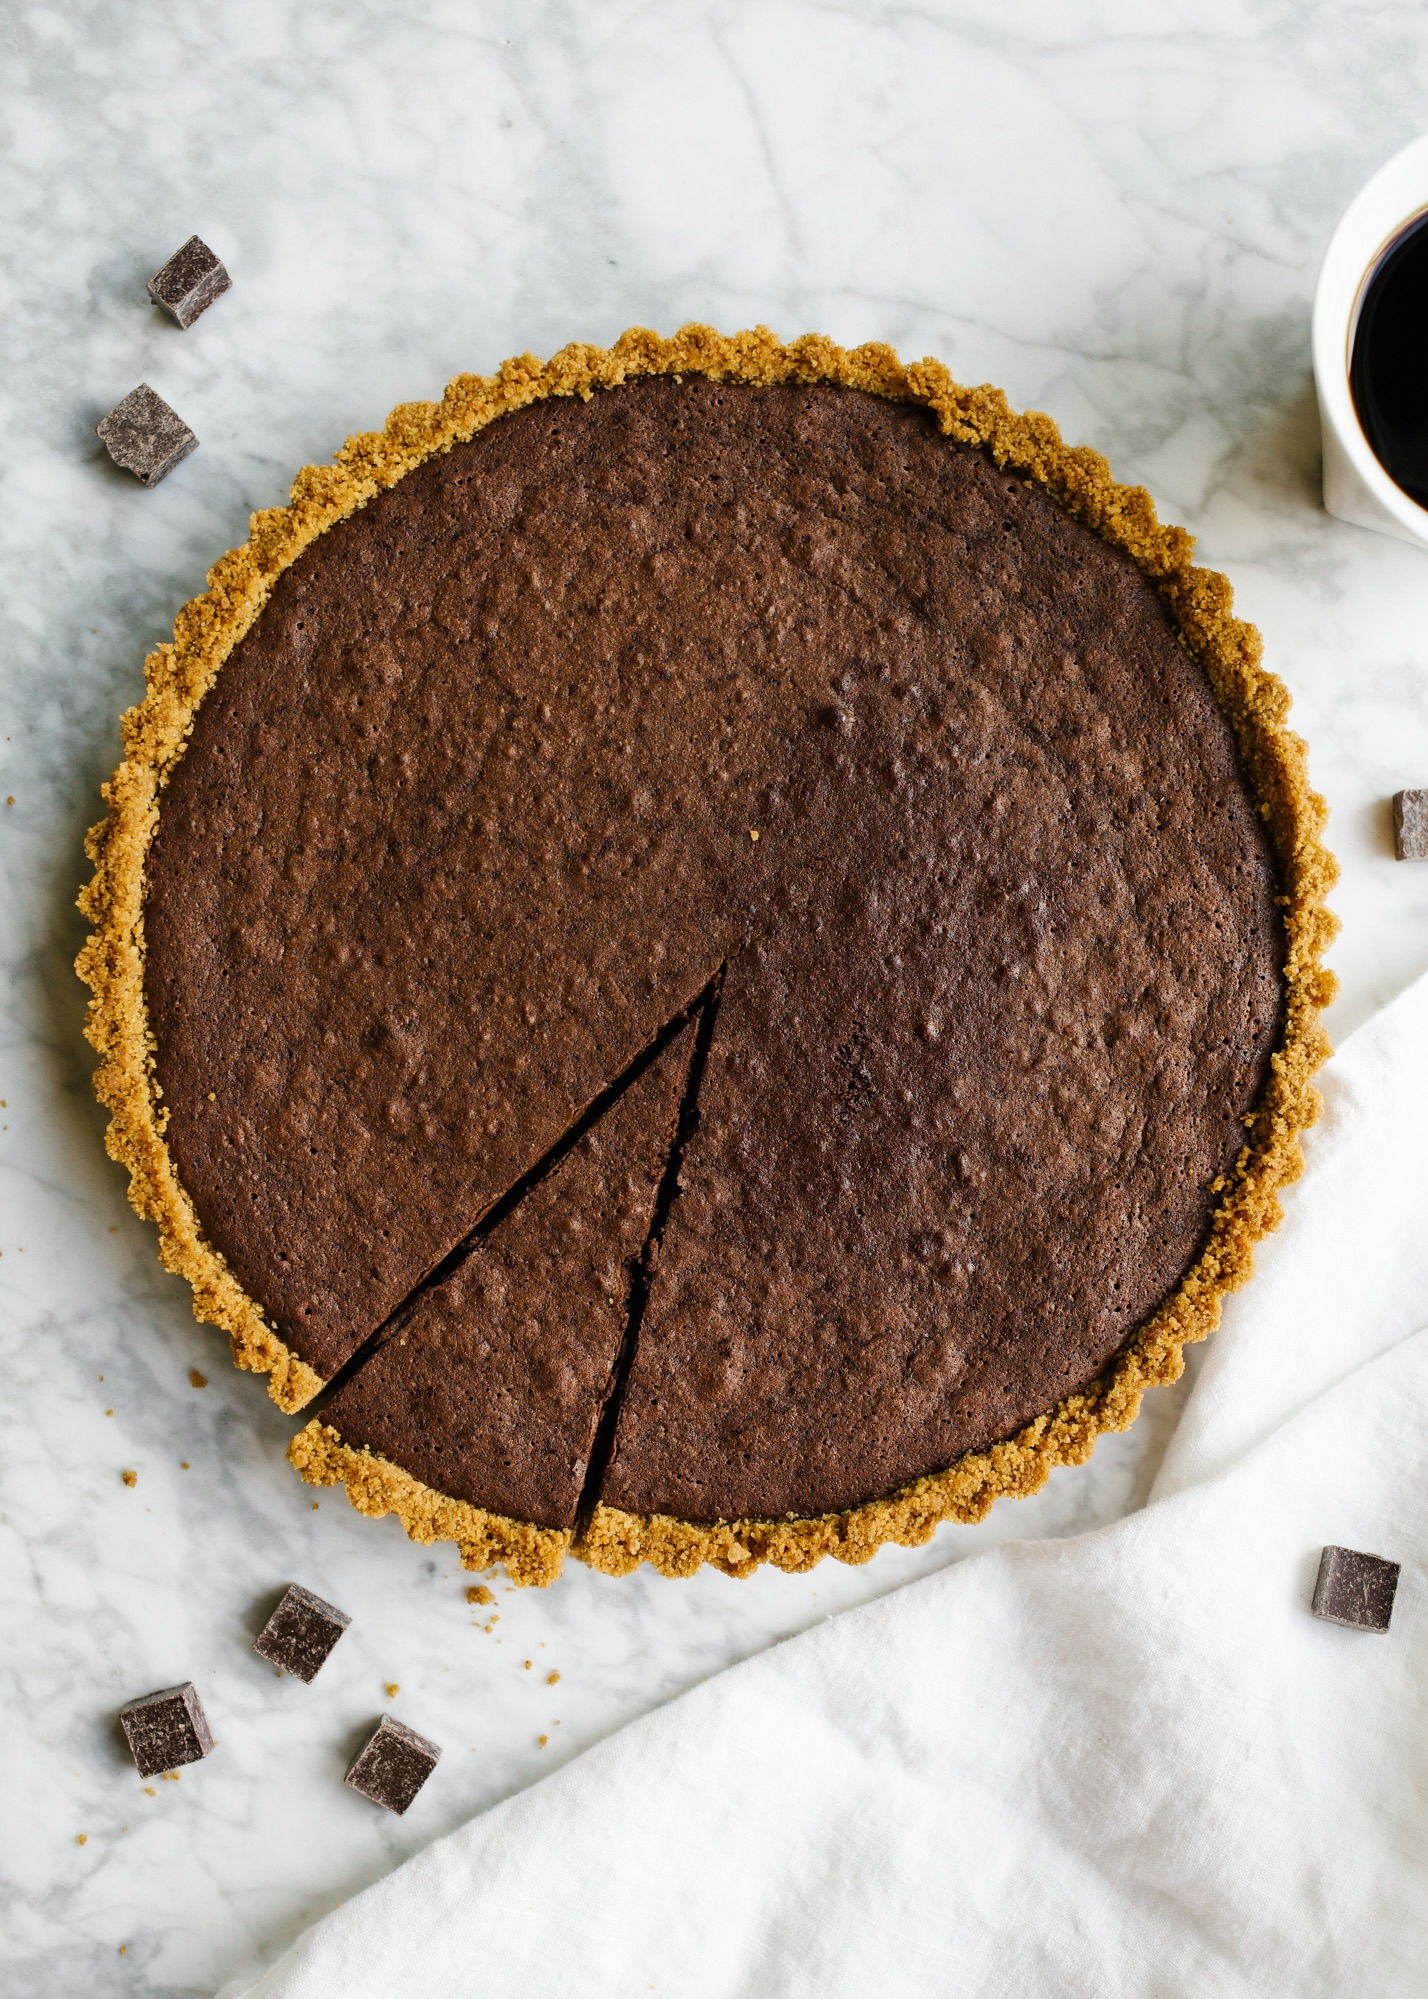 Fudgy Brownie Tart by Wood and Spoon by Kate Wood. This is a graham cracker press in butter crust with a melted chocolate and cocoa powder brownie milk tart. It's rich with the addition of Red Diamond Coffee and tastes best with a. sprinkle of flaky sea salt. Learn more about this simple holiday dessert recipe for a crowd on thewoodandspoon.com.